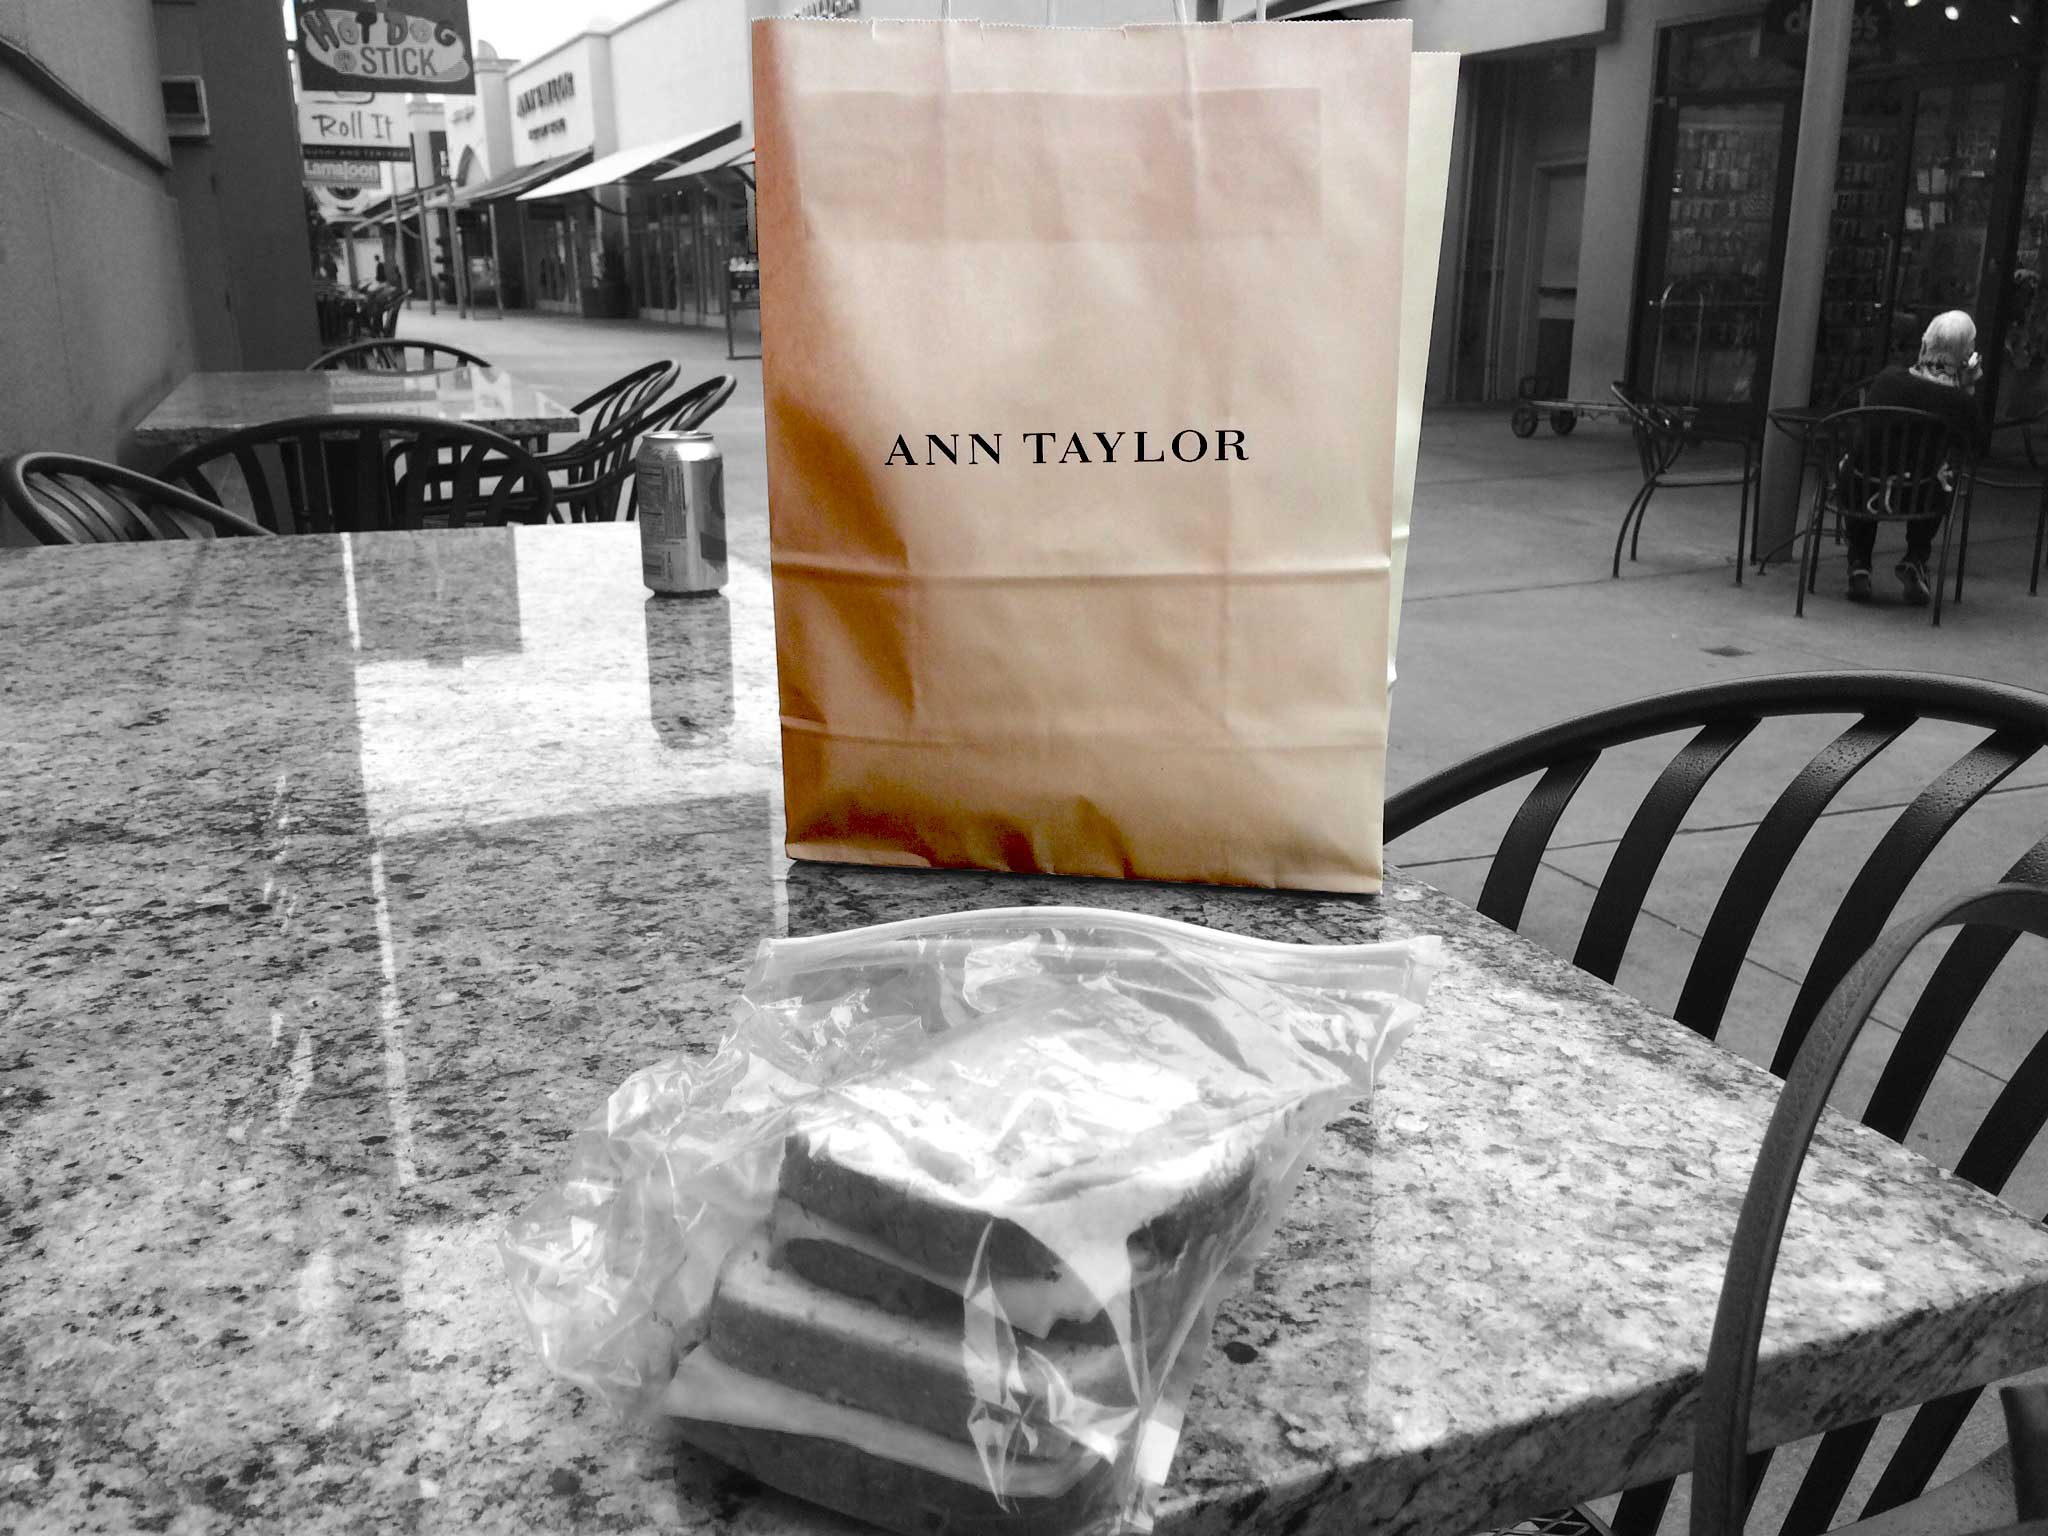 Just came out of Ann Taylor-bought 3 modal full-sleeved tees for the price of one! Now time for a sandwich! Citadel Outlets, LA, CA, USA. Image©gunjanvirk